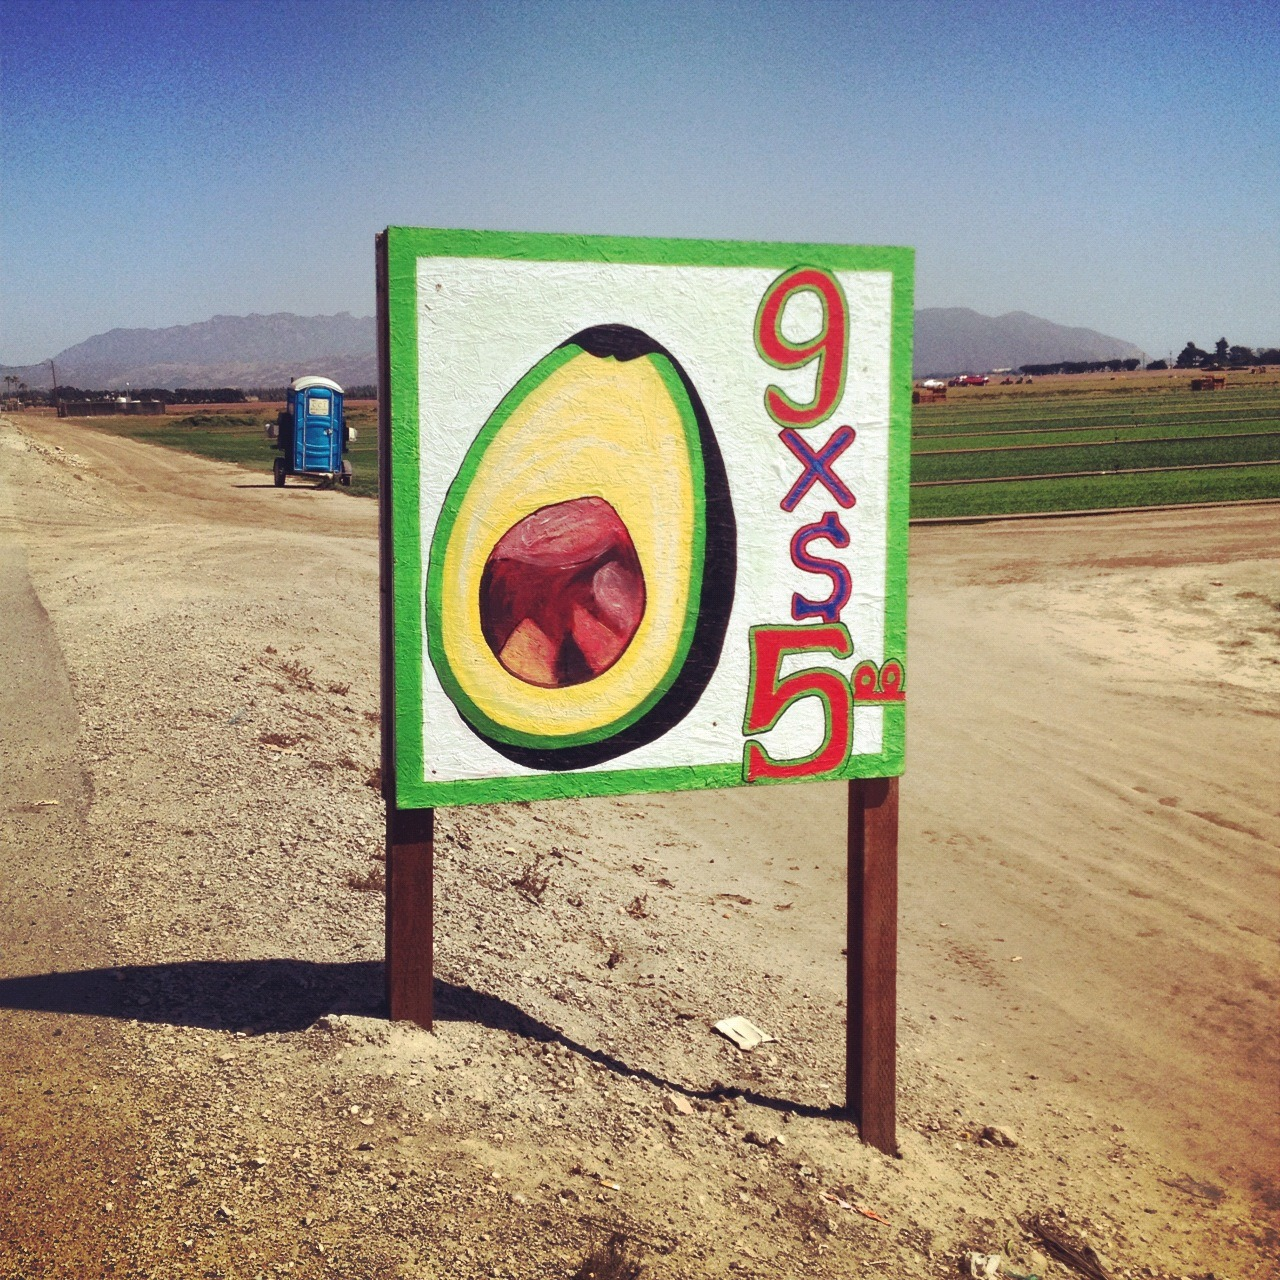 Bet avocado sign ever. 4 @kayhogan - thx 4 yr donation.